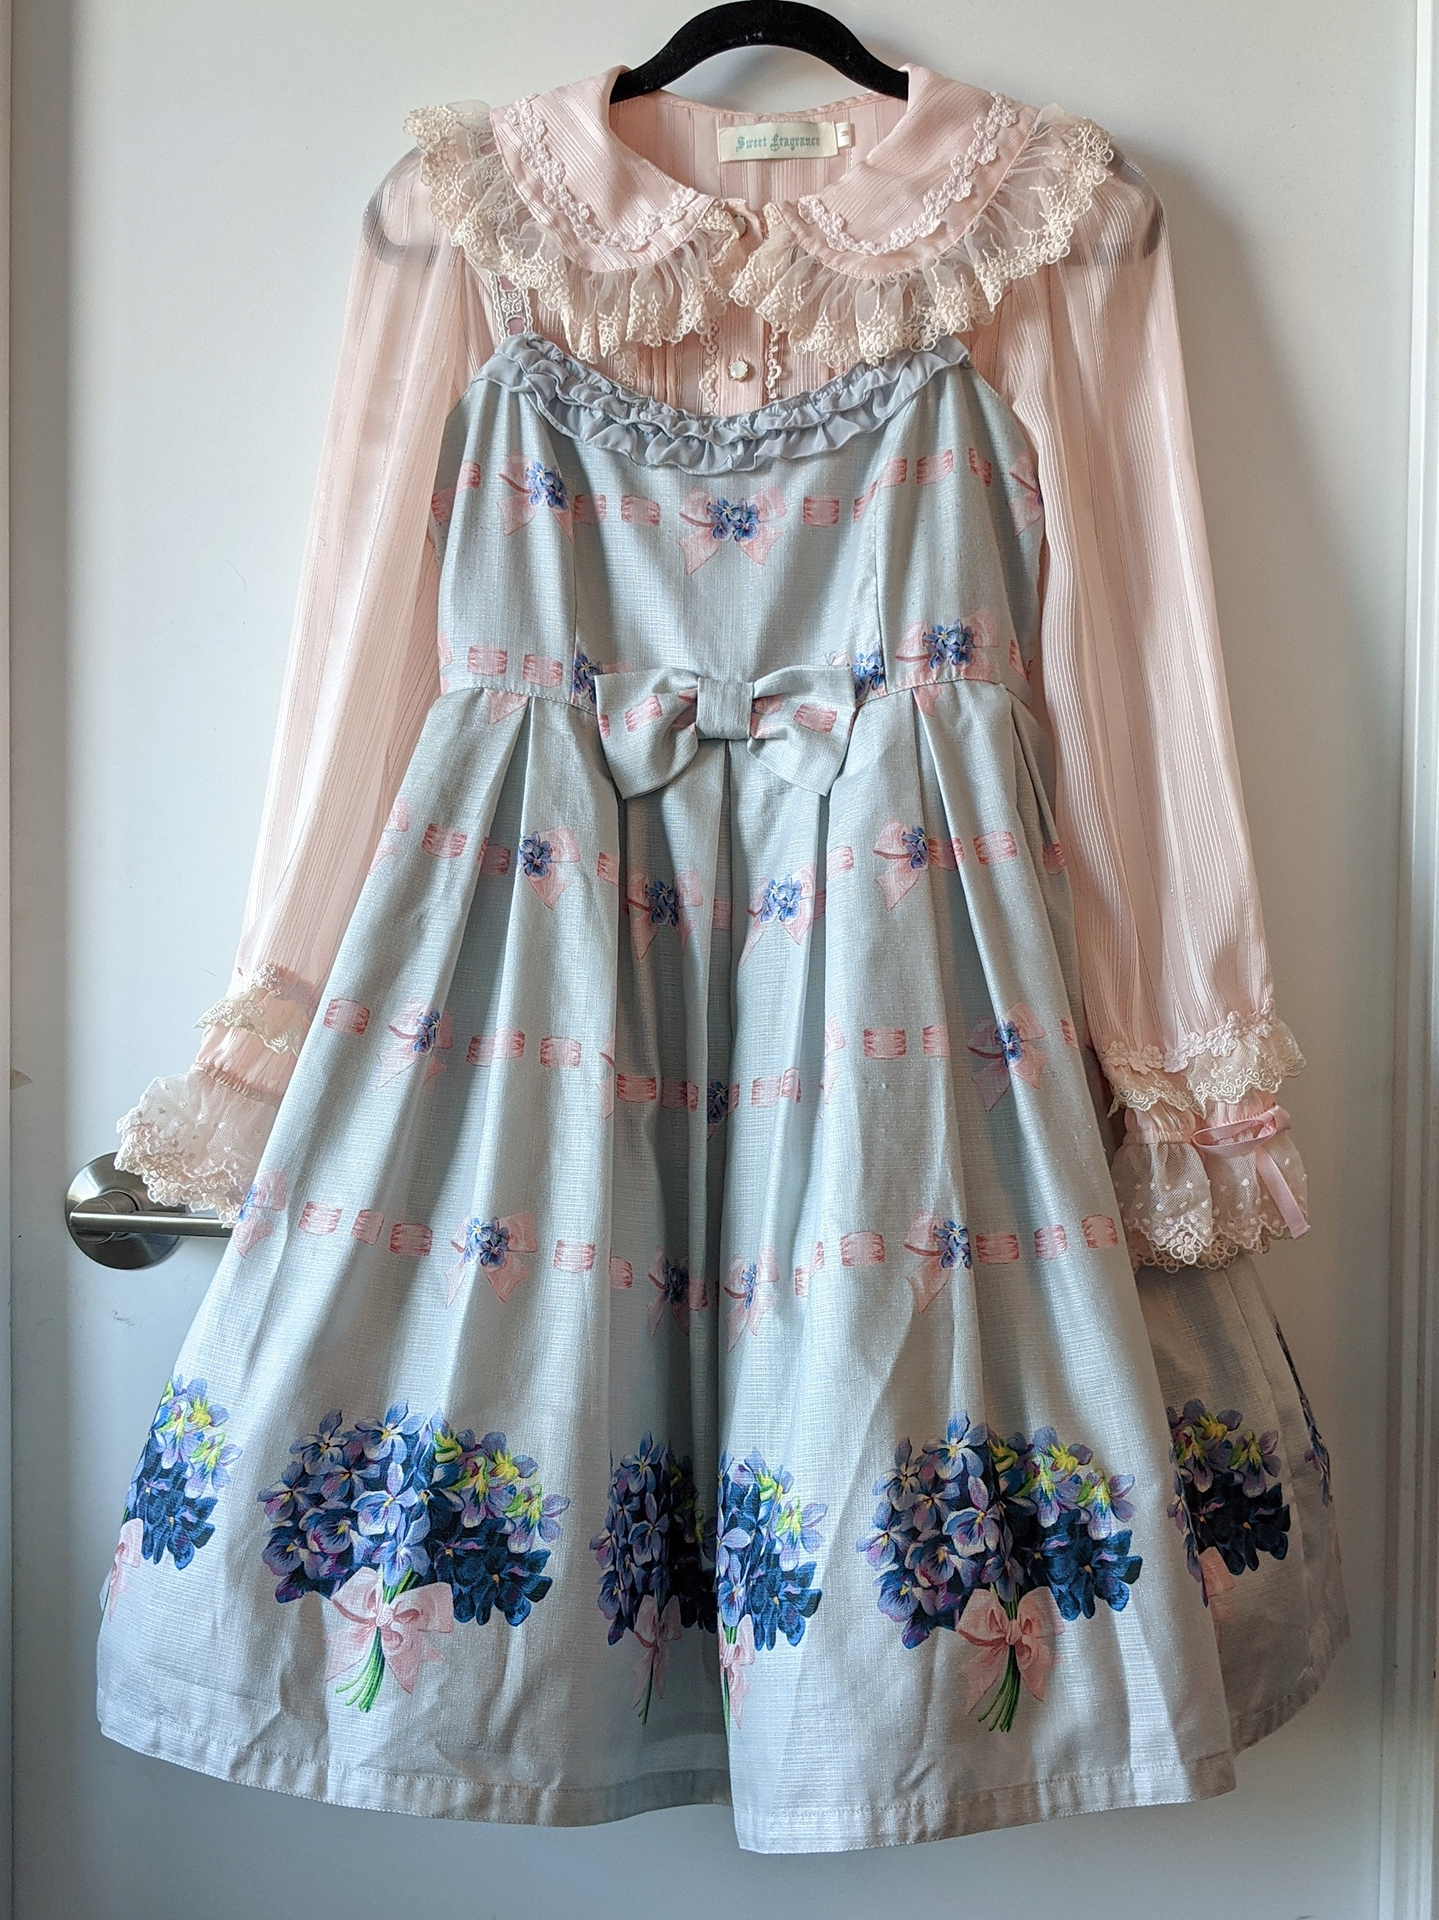 Ribbon and Bouquet by Leur Getter, blouse from Taobao